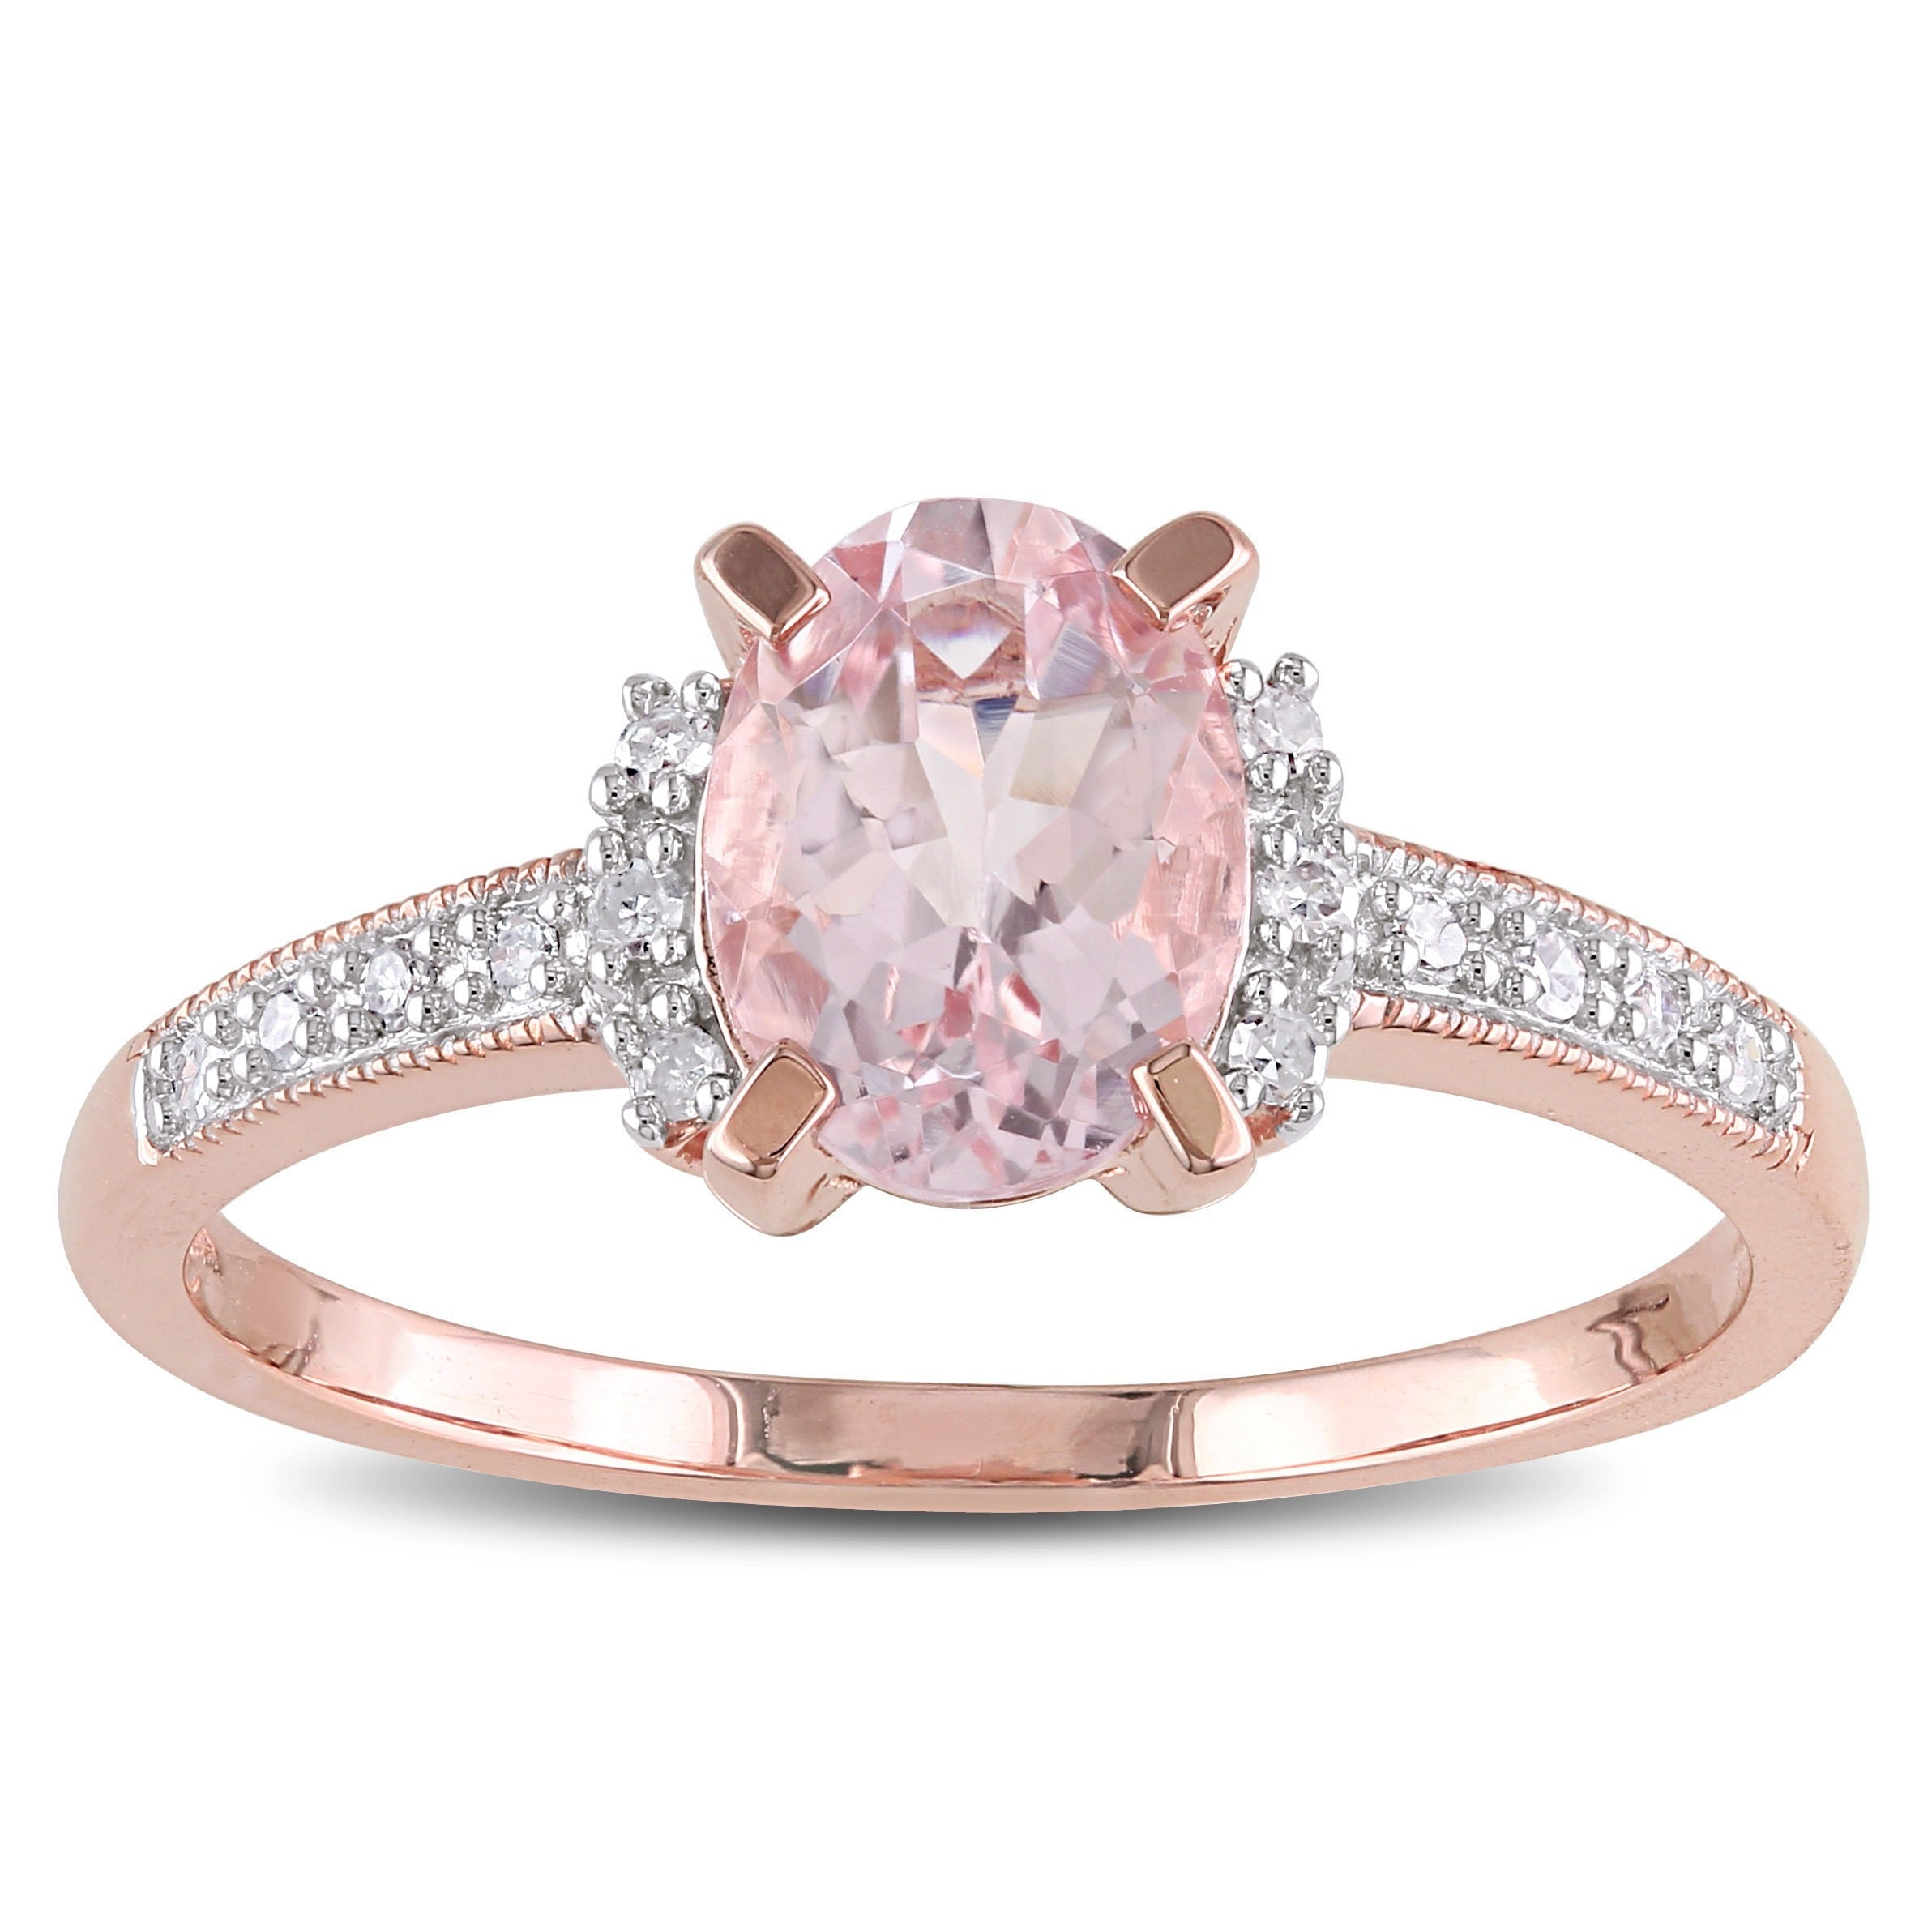 tangelo and stone g com ip diamond w ring morganite engagement created gold sapphire rings t carat accent white walmart three rose